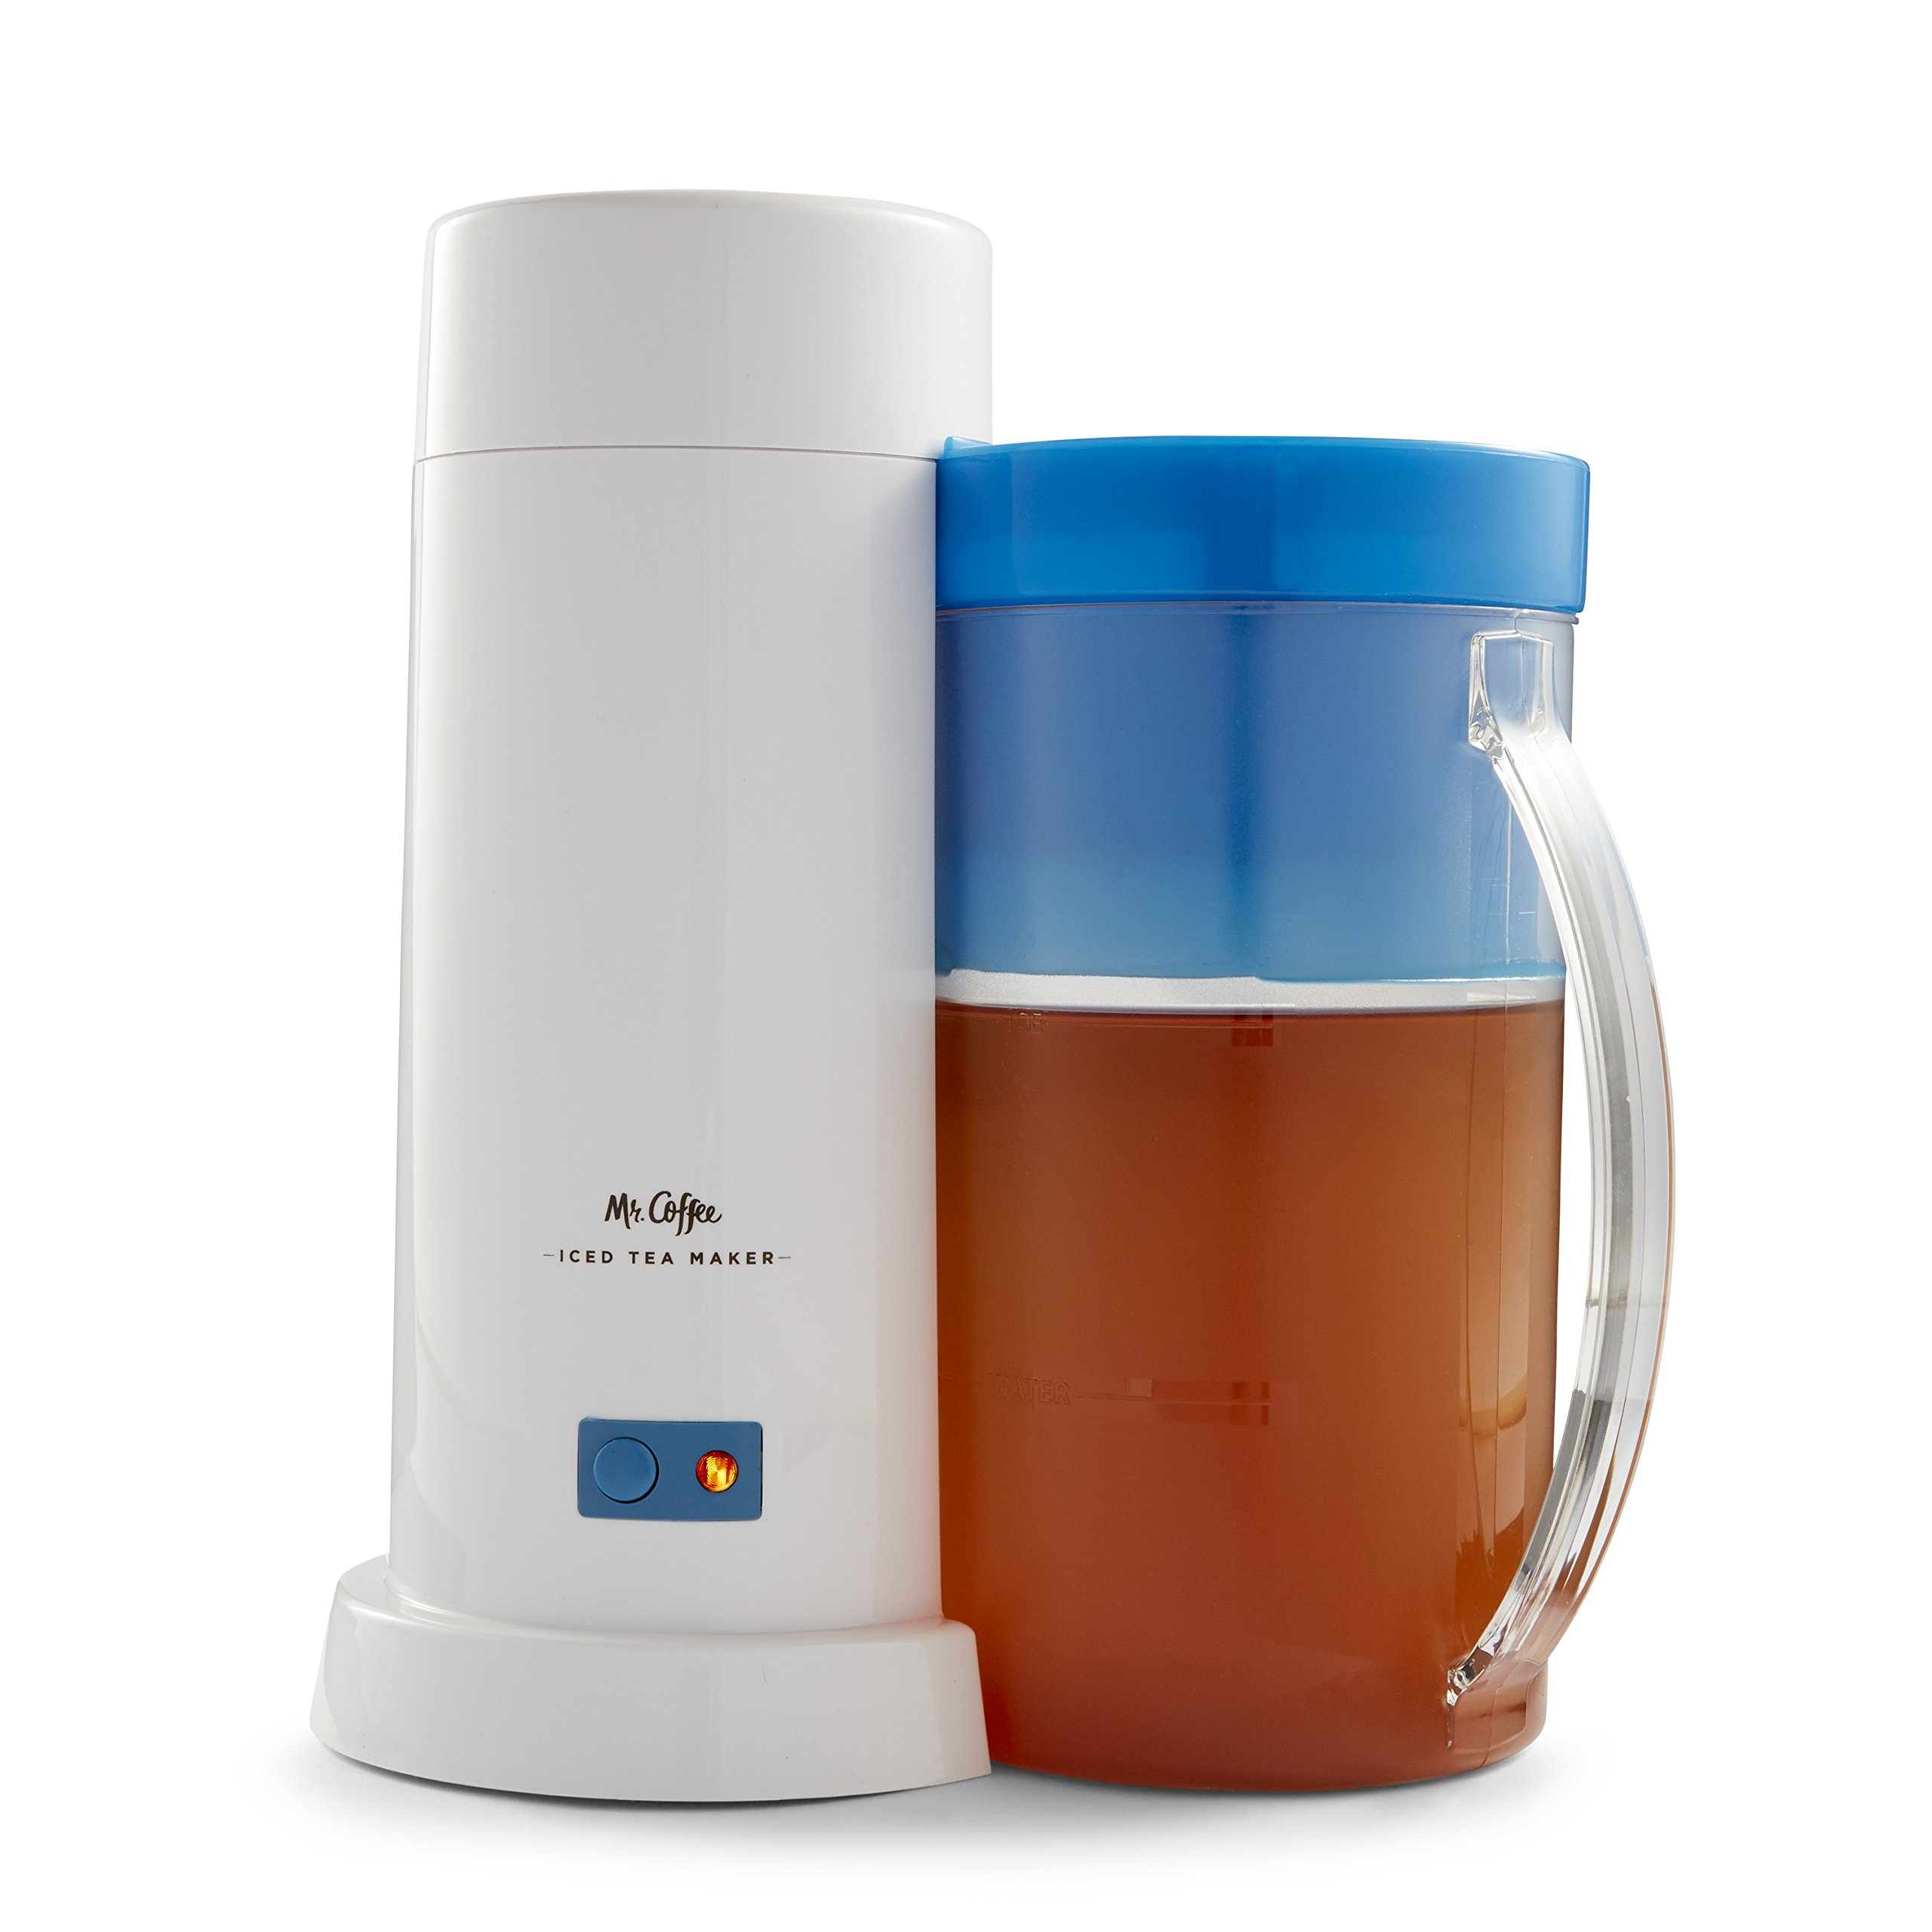 Mr. Coffee TM1 2-Quart Iced Tea Maker for Loose or Bagged Tea, Blue by Mr. Coffee